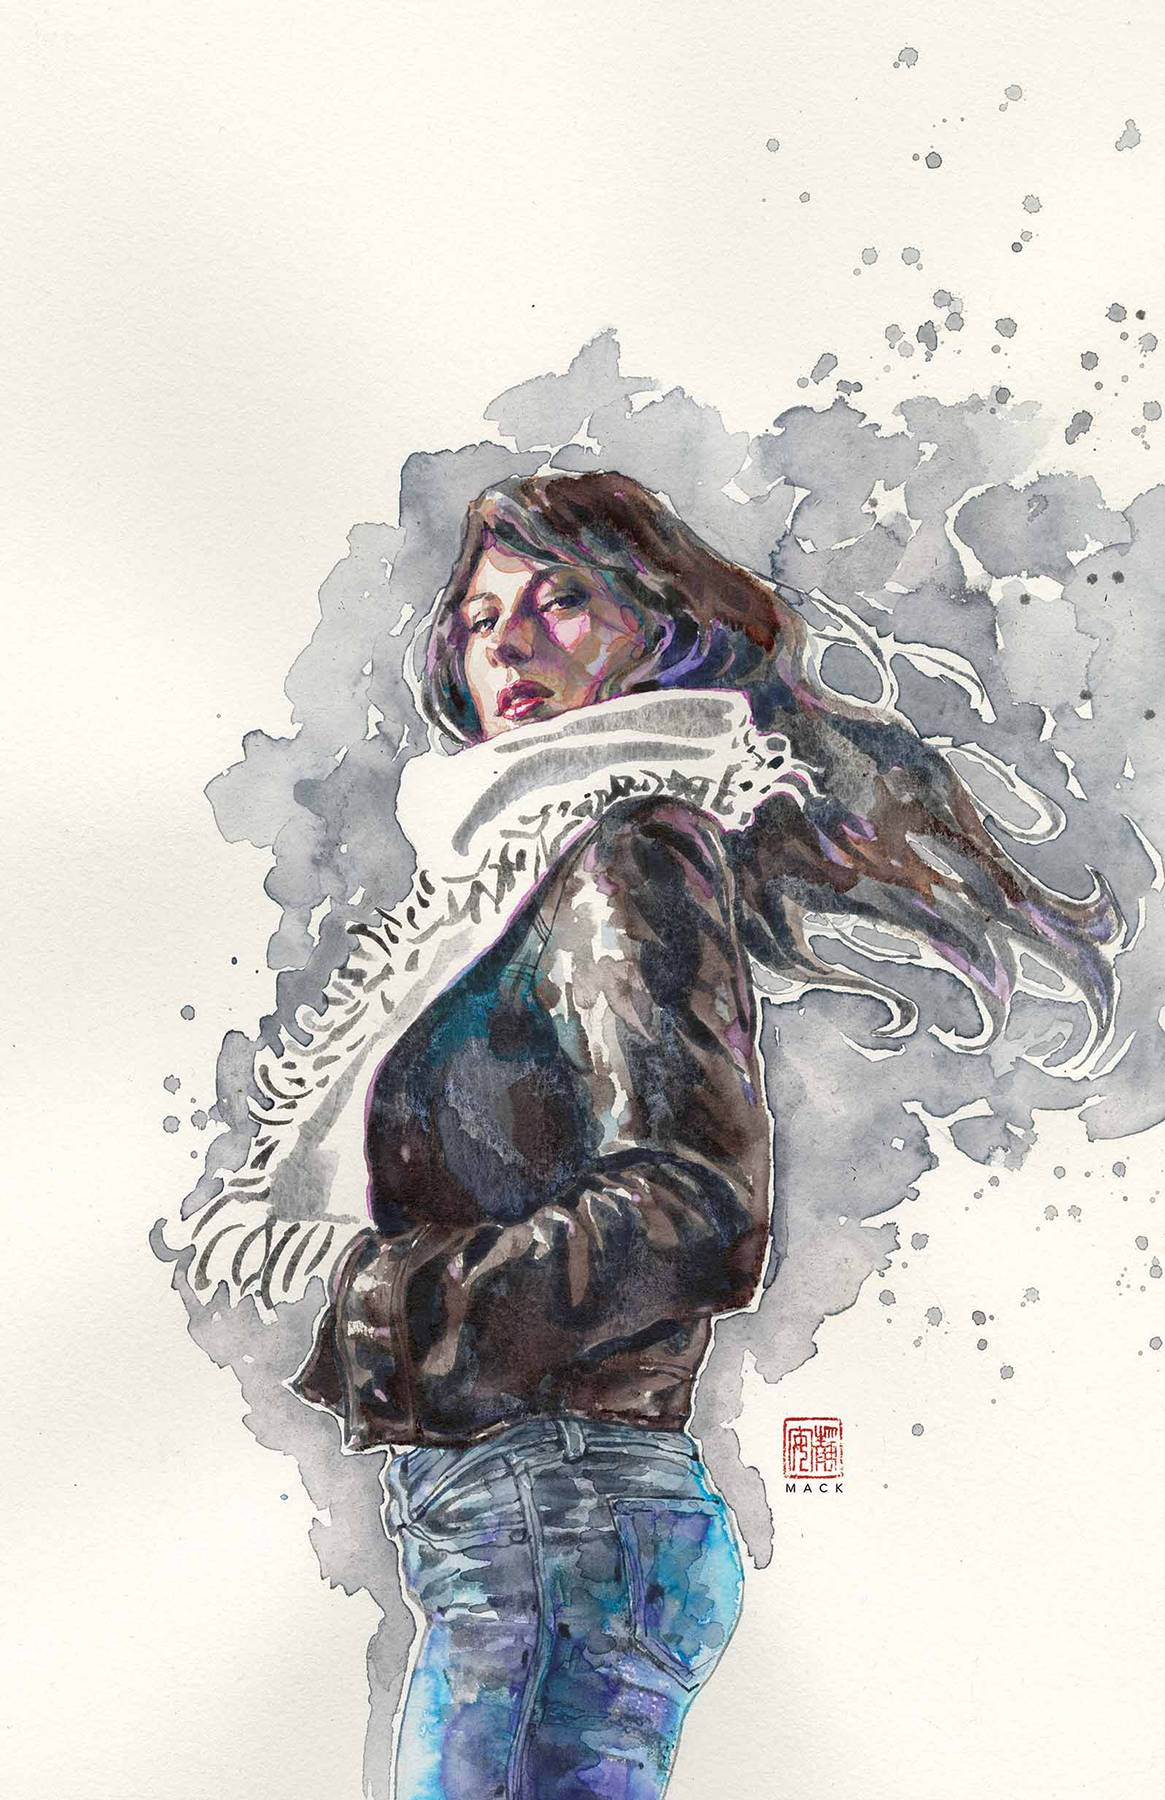 JESSICA JONES #1 BY MACK POSTER